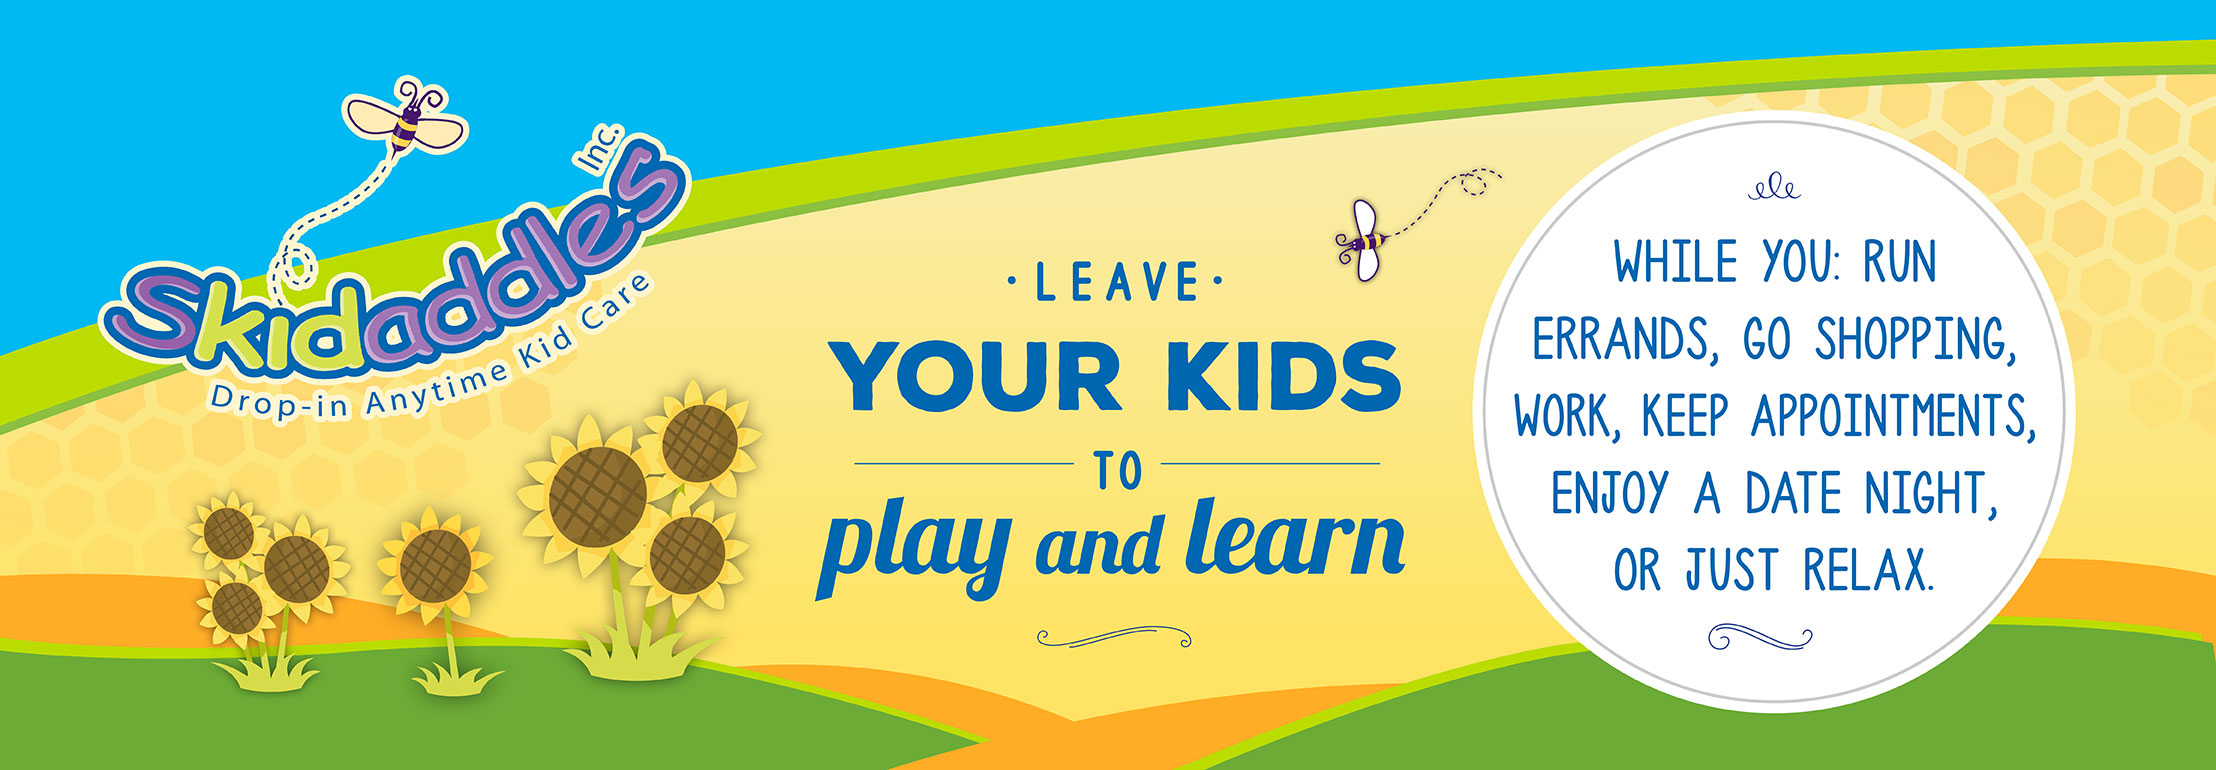 Leave your kids to play and learn while you run errands, go shopping, work, keep appointments, enjoy a date night, or just relax.